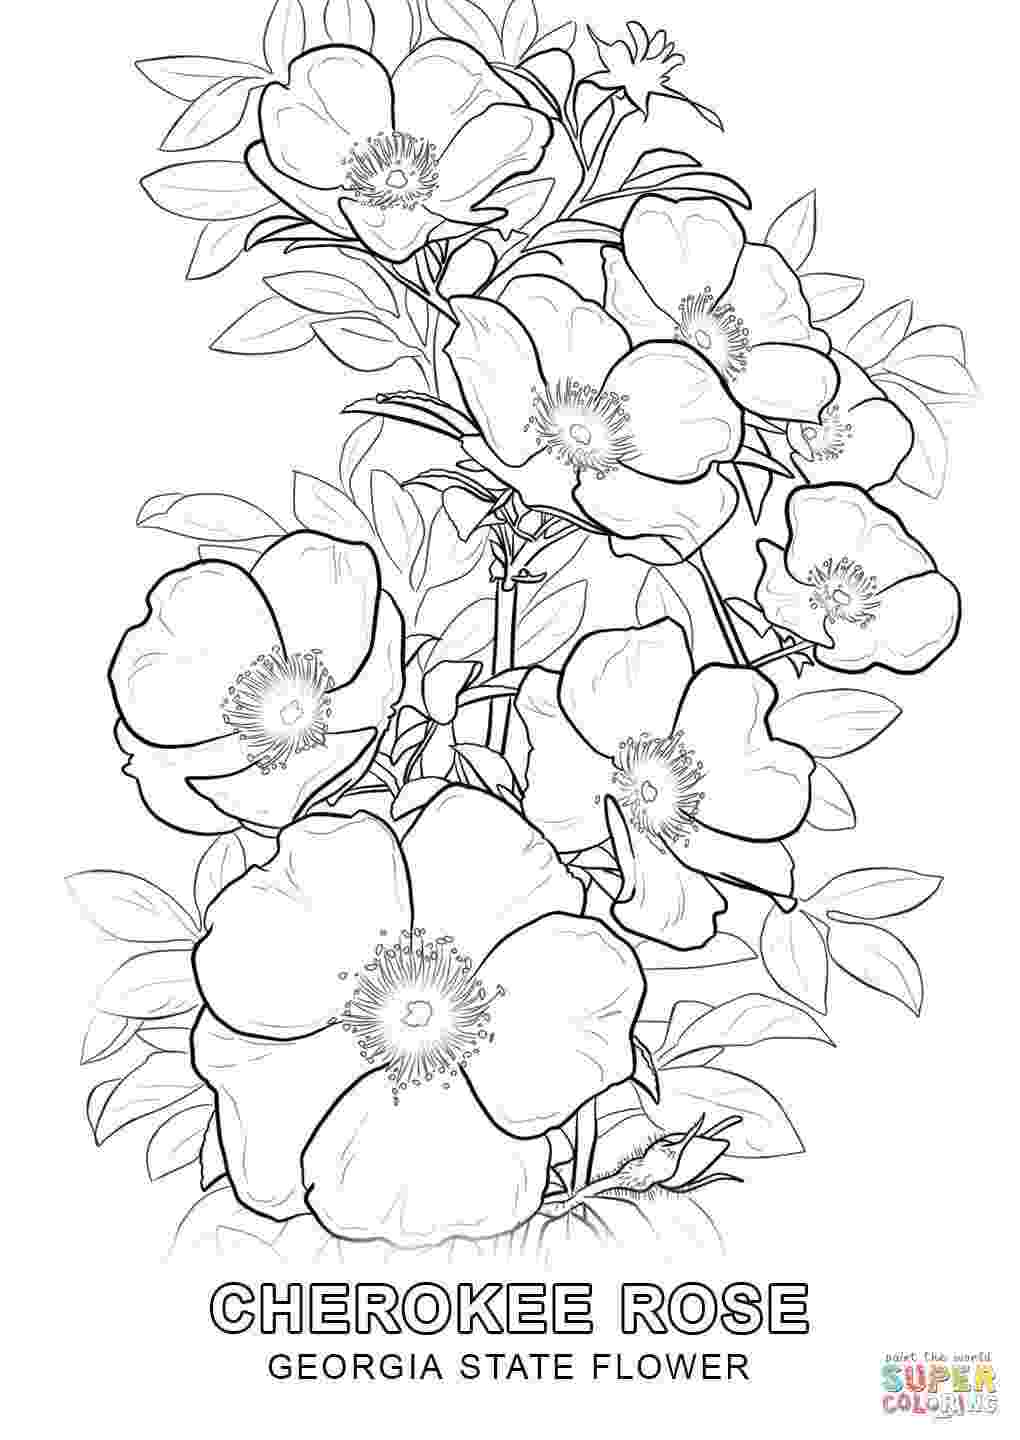 georgia state flower states flower coloring sheets alabama georgia free flower georgia state